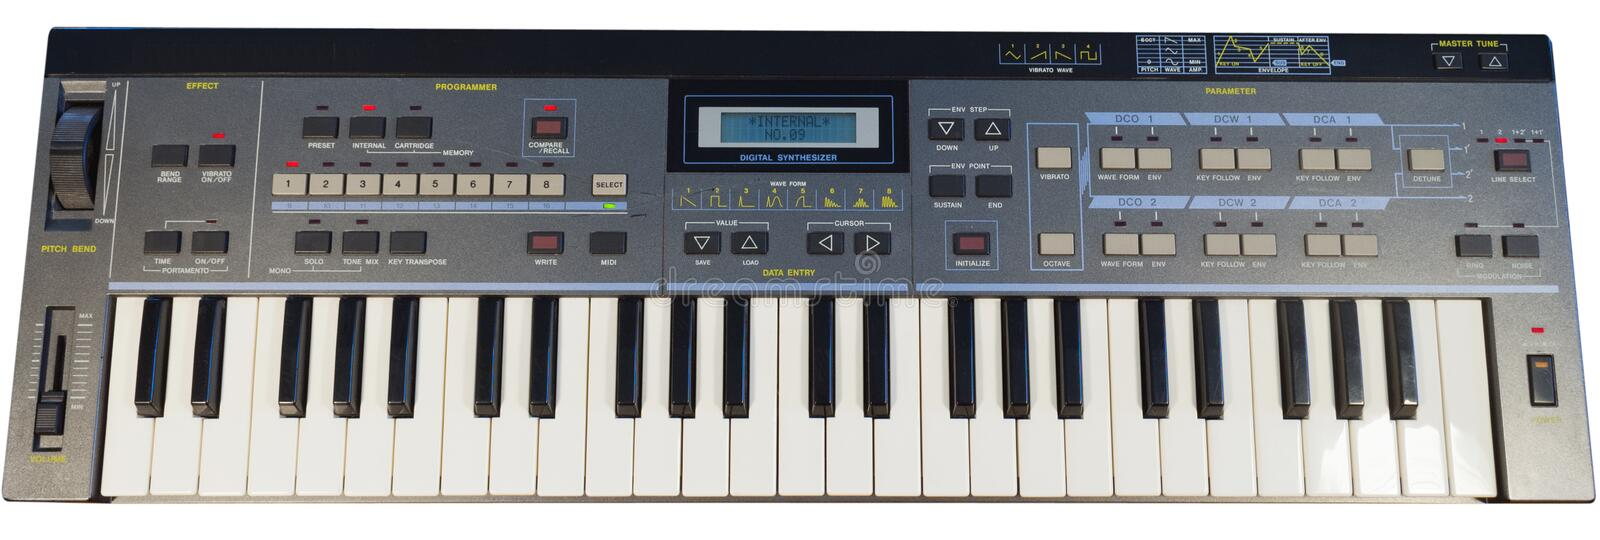 Vintage digital synthesizer stock photos